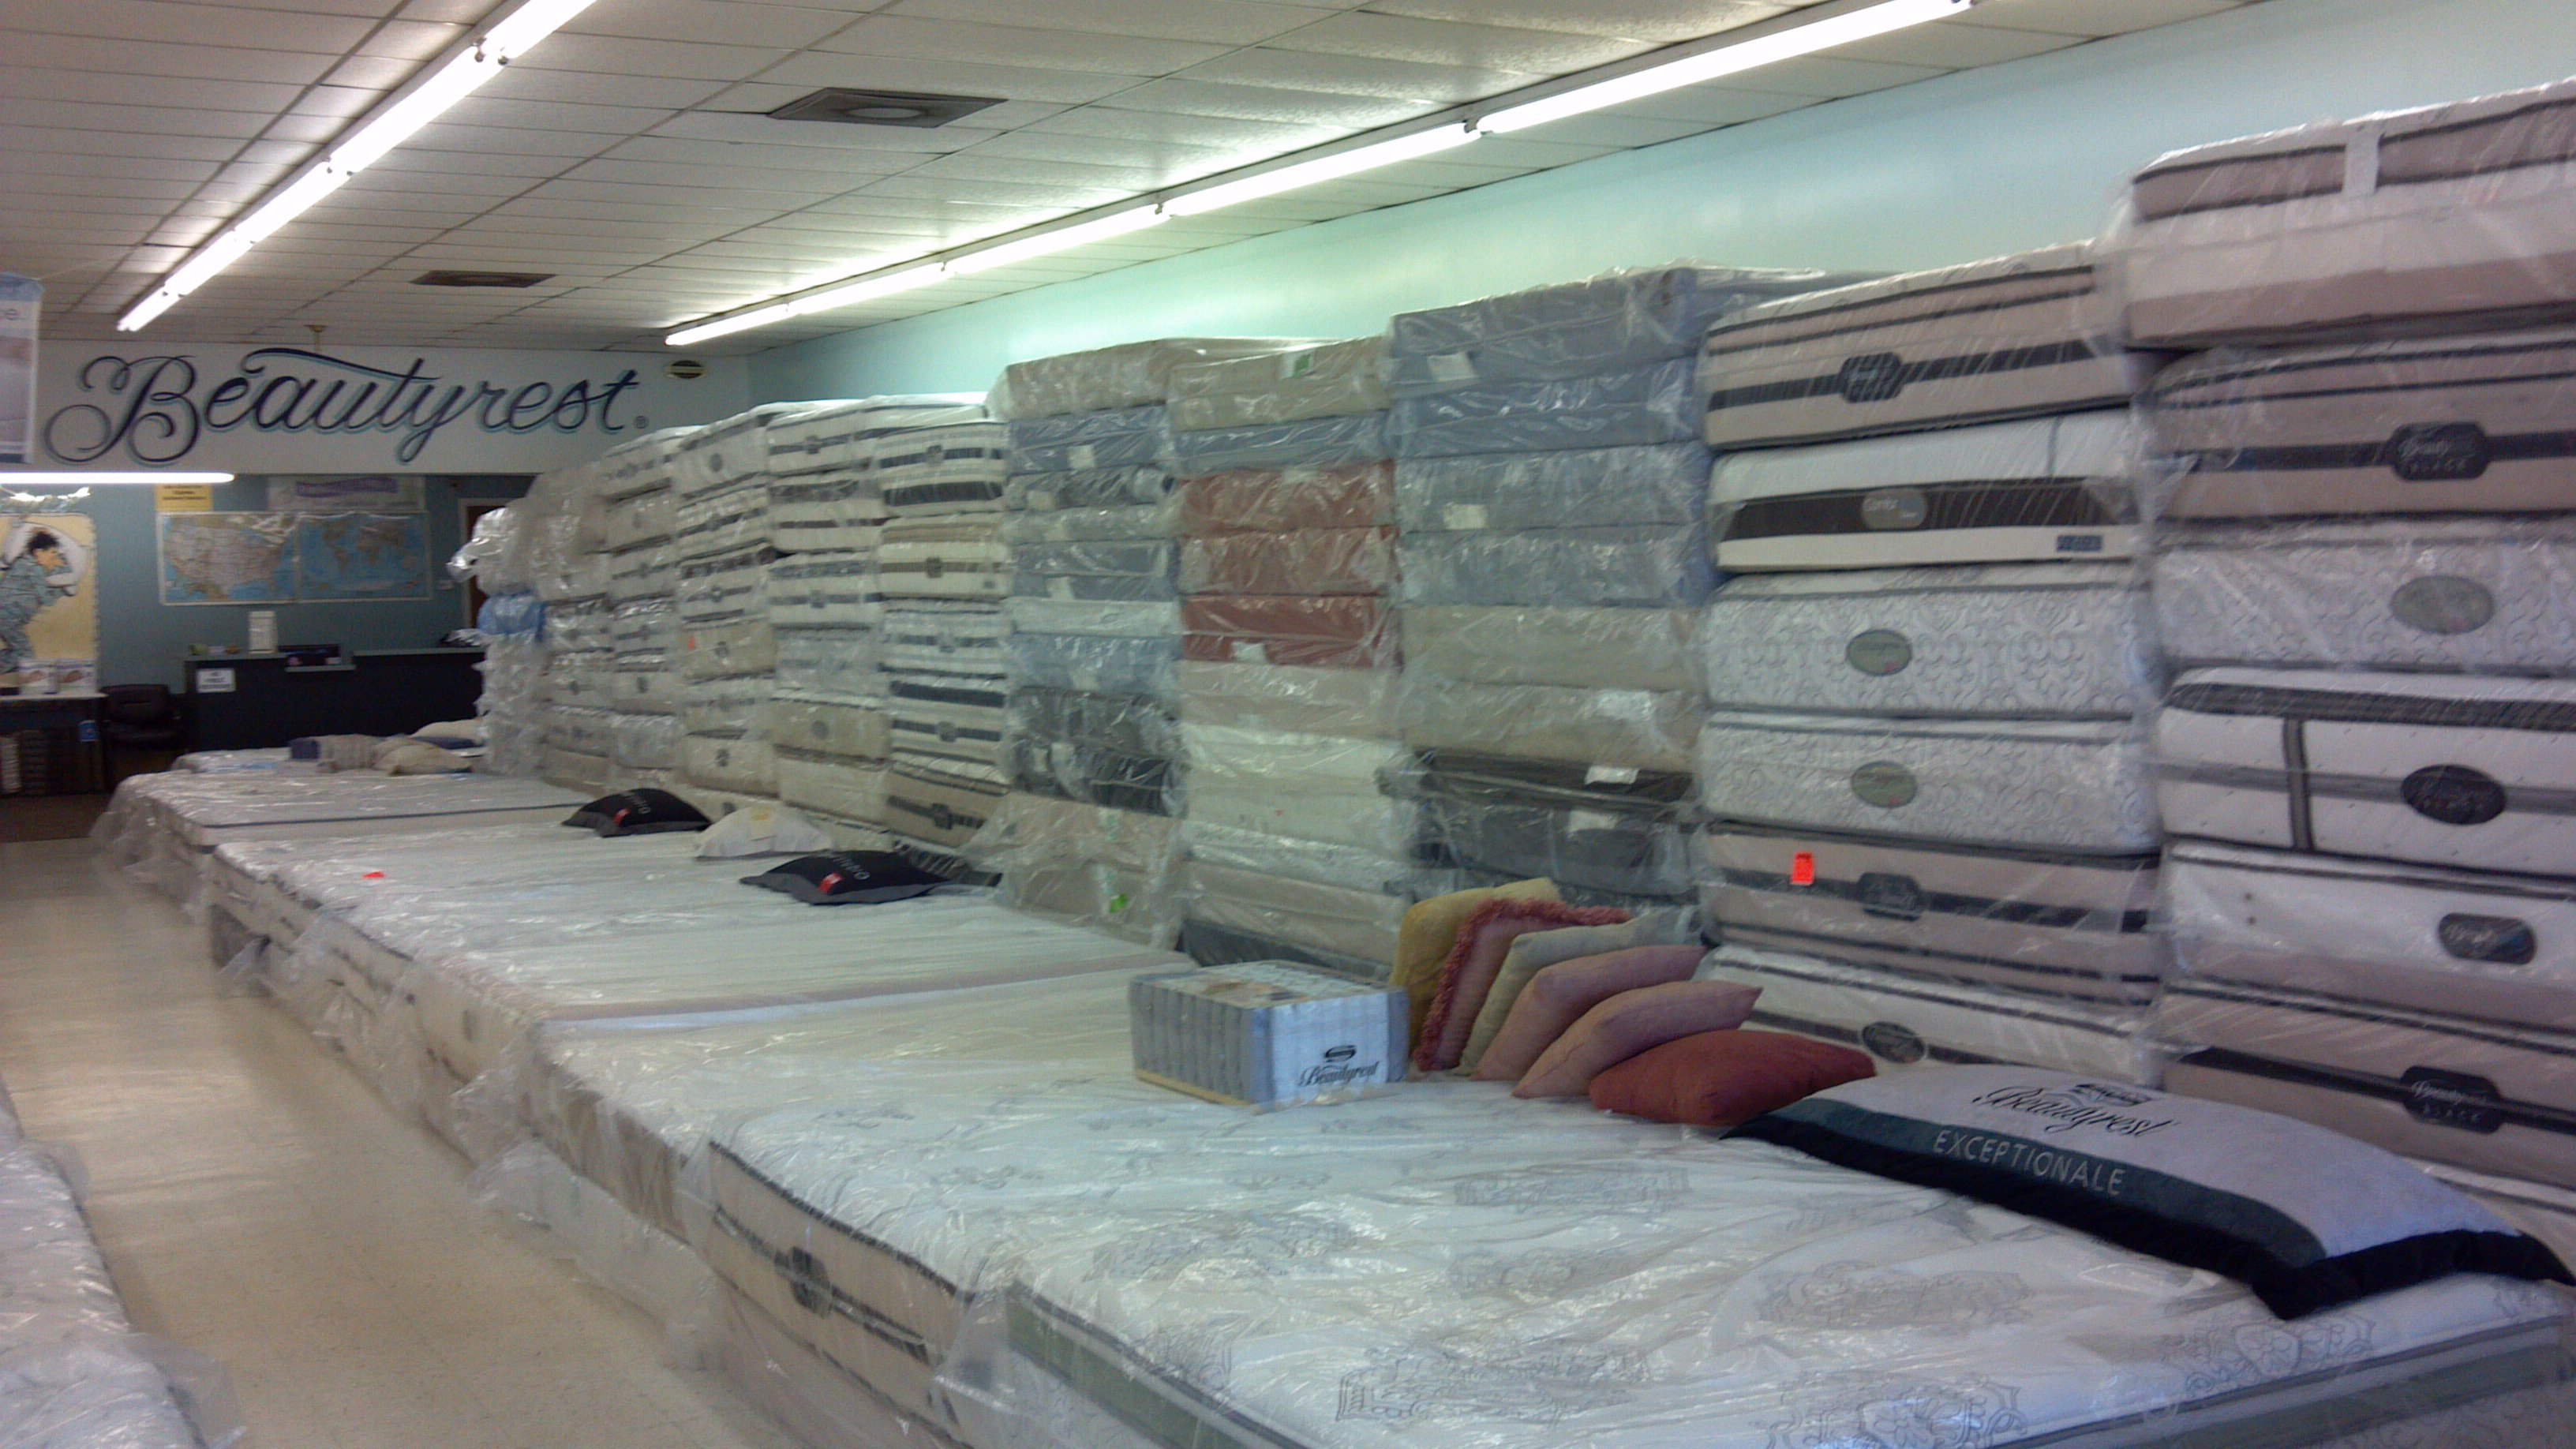 Mattress Outlet Jacksonville & Tallahassee FL